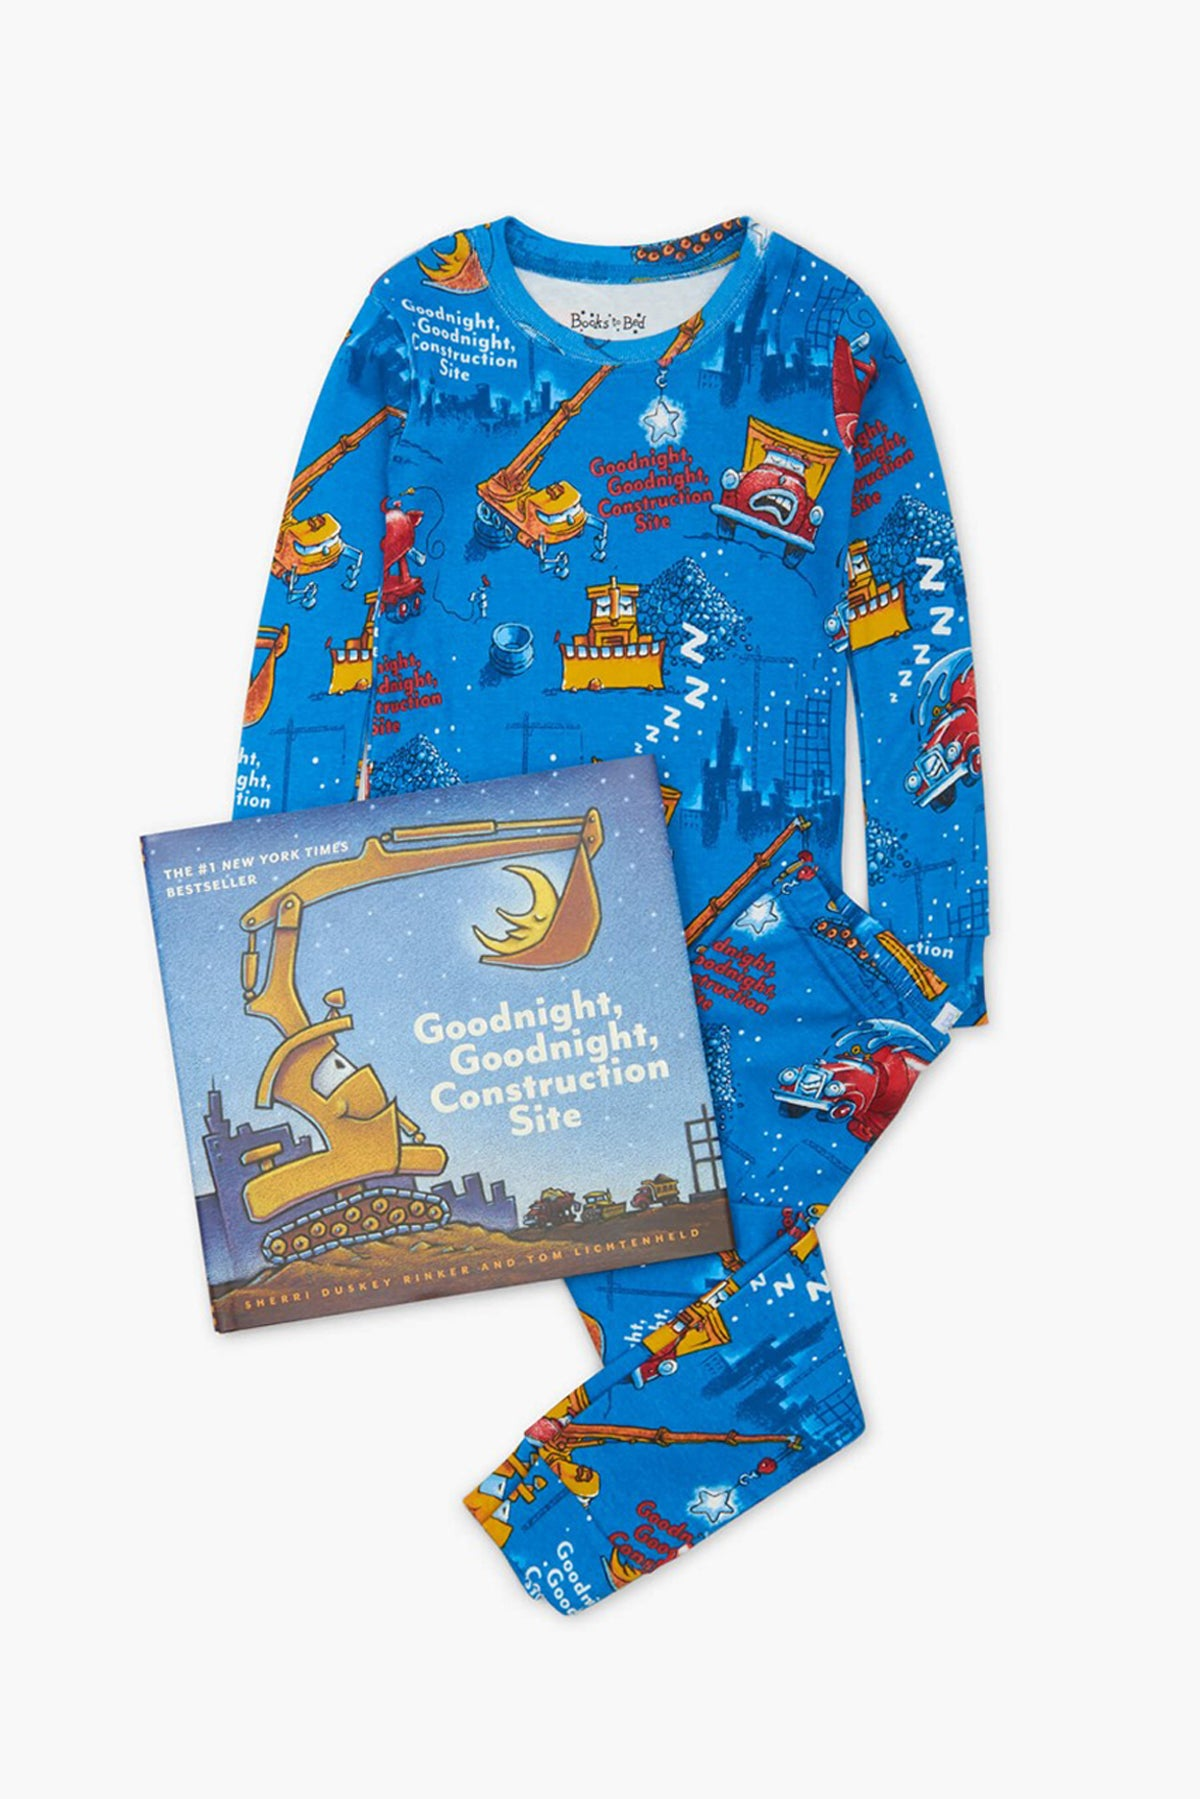 Books To Bed Goodnight Construction Site Kids Pajamas and Book Set